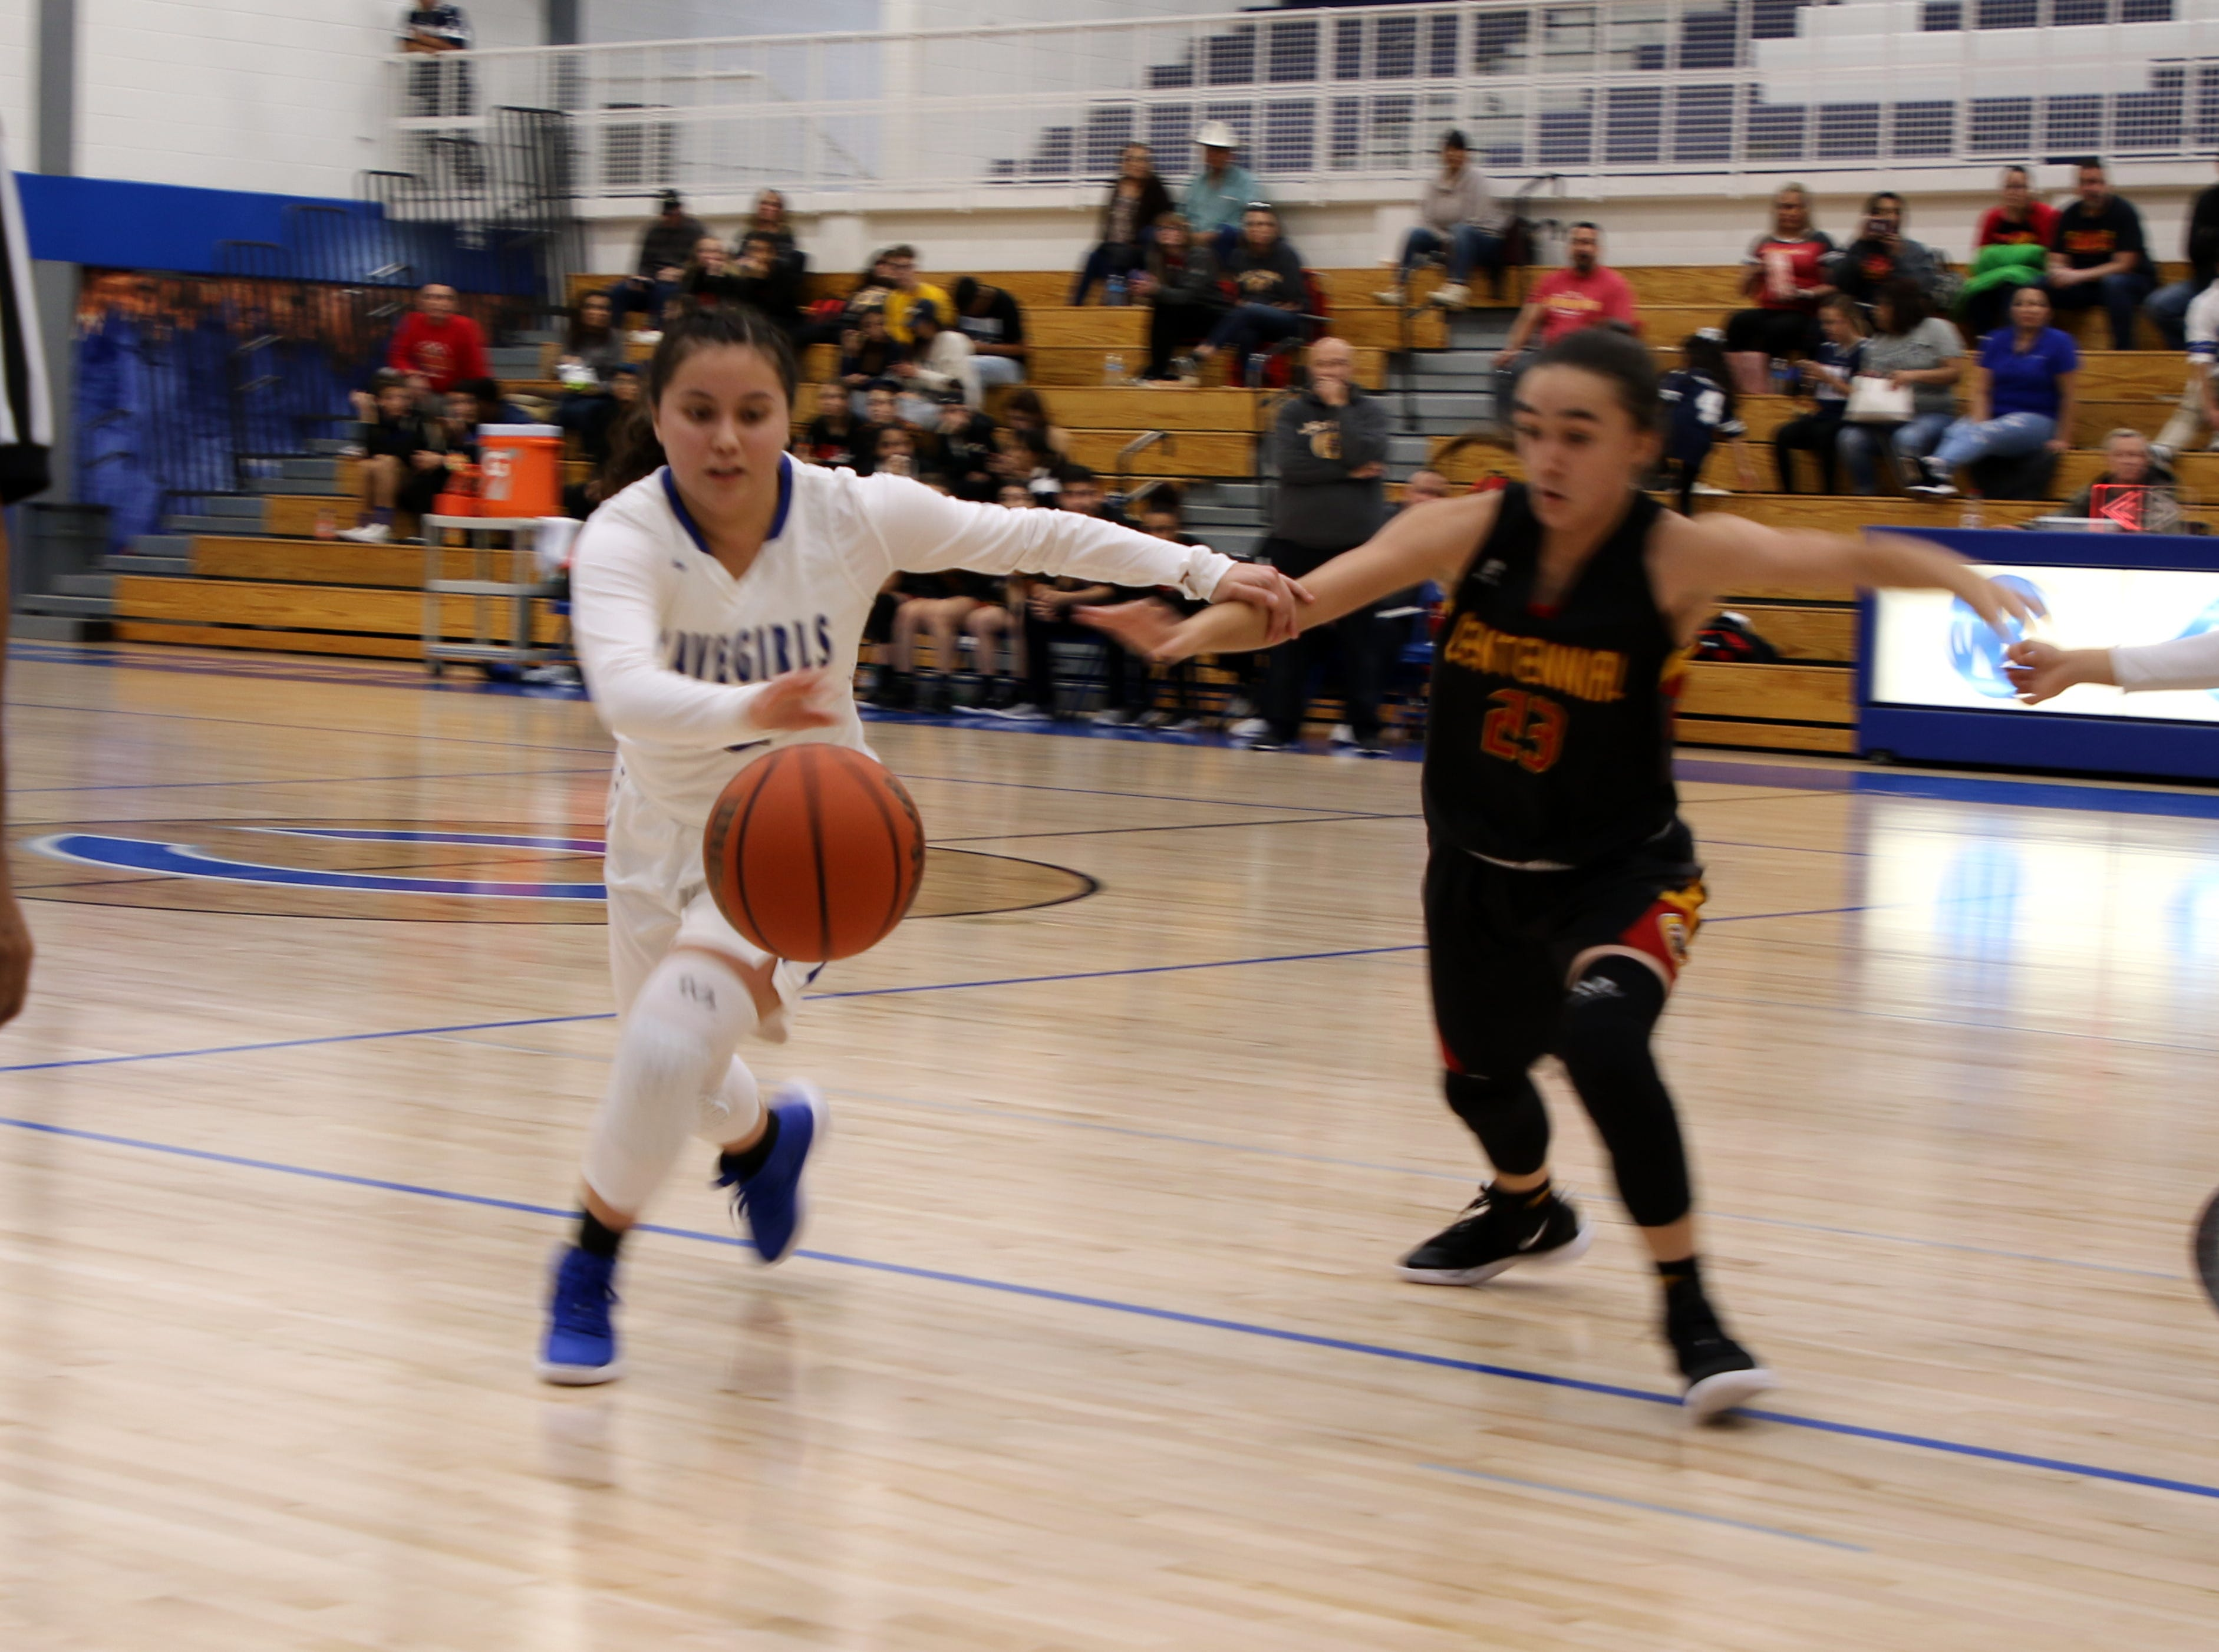 Carlsbad's Nyah Chacon and Centennial's Andreana Armendariz (23) fight for a loose ball during Saturday's game.